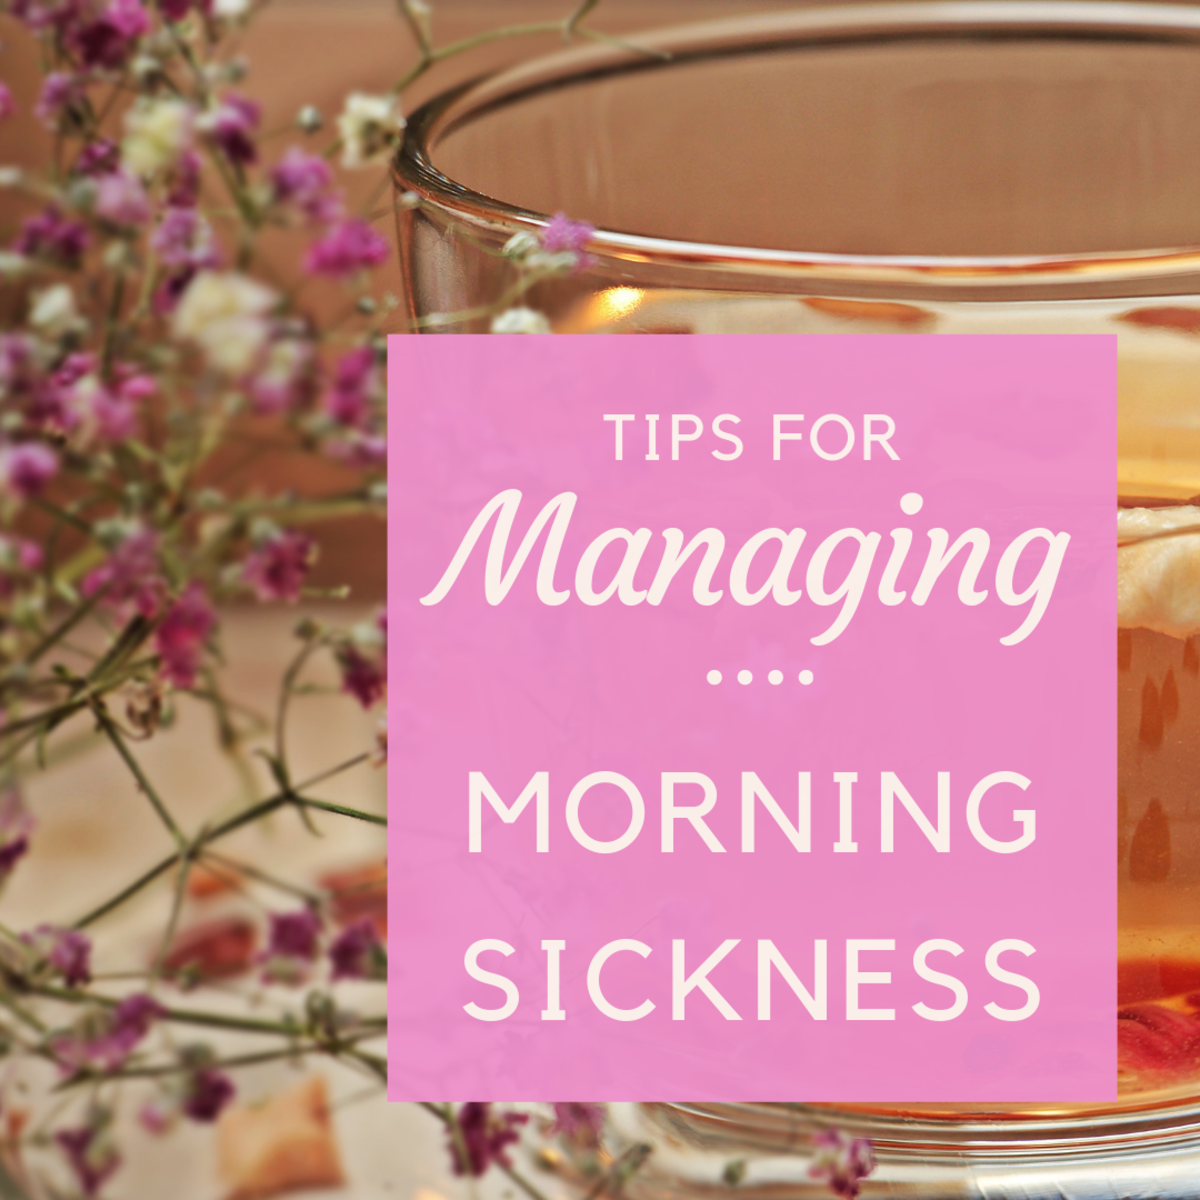 Natural Ways to Fight Morning Sickness